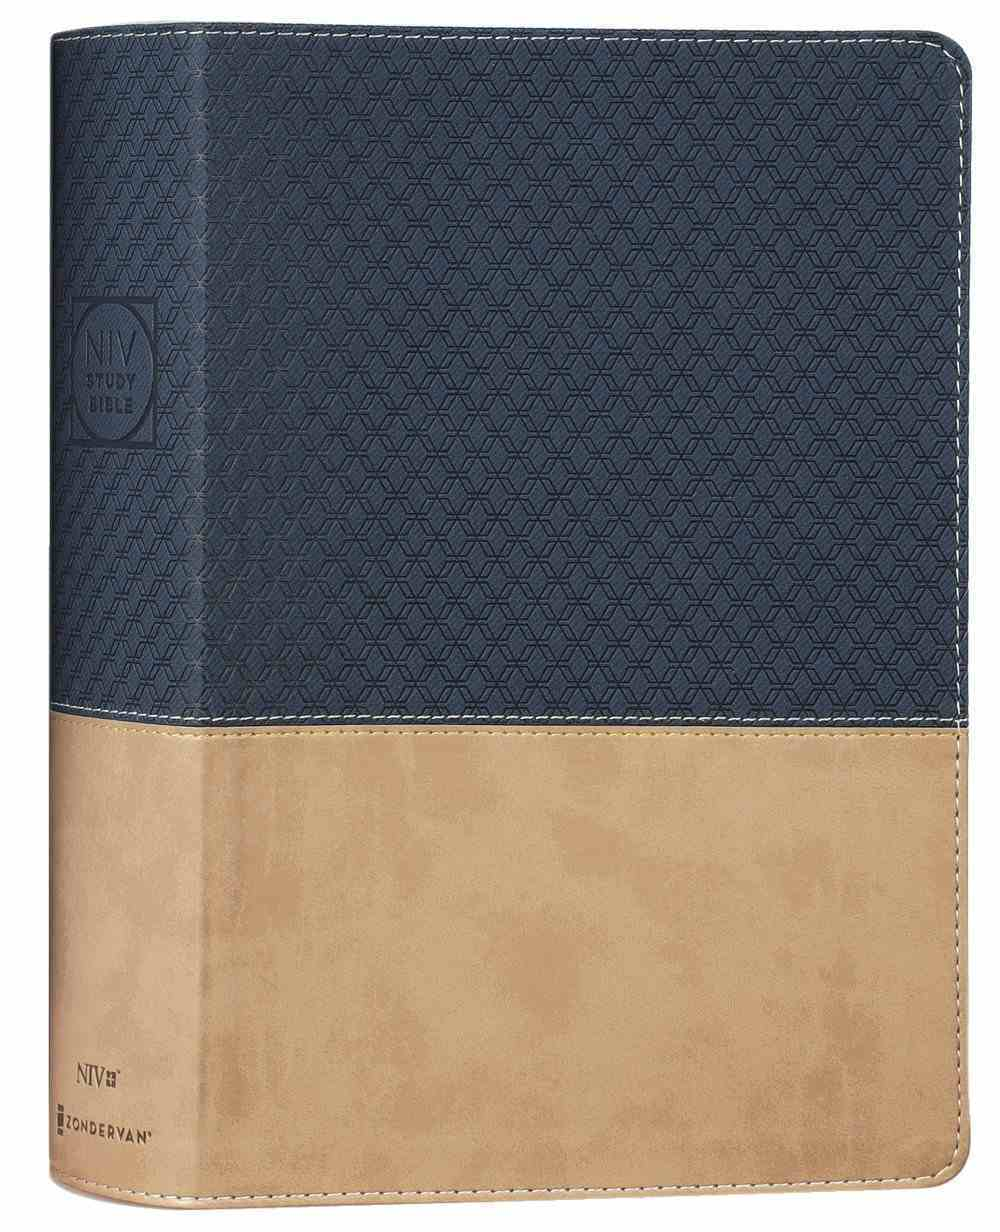 NIV Study Bible Navy/Tan Indexed (Red Letter Edition) Fully Revised Edition (2020) Premium Imitation Leather